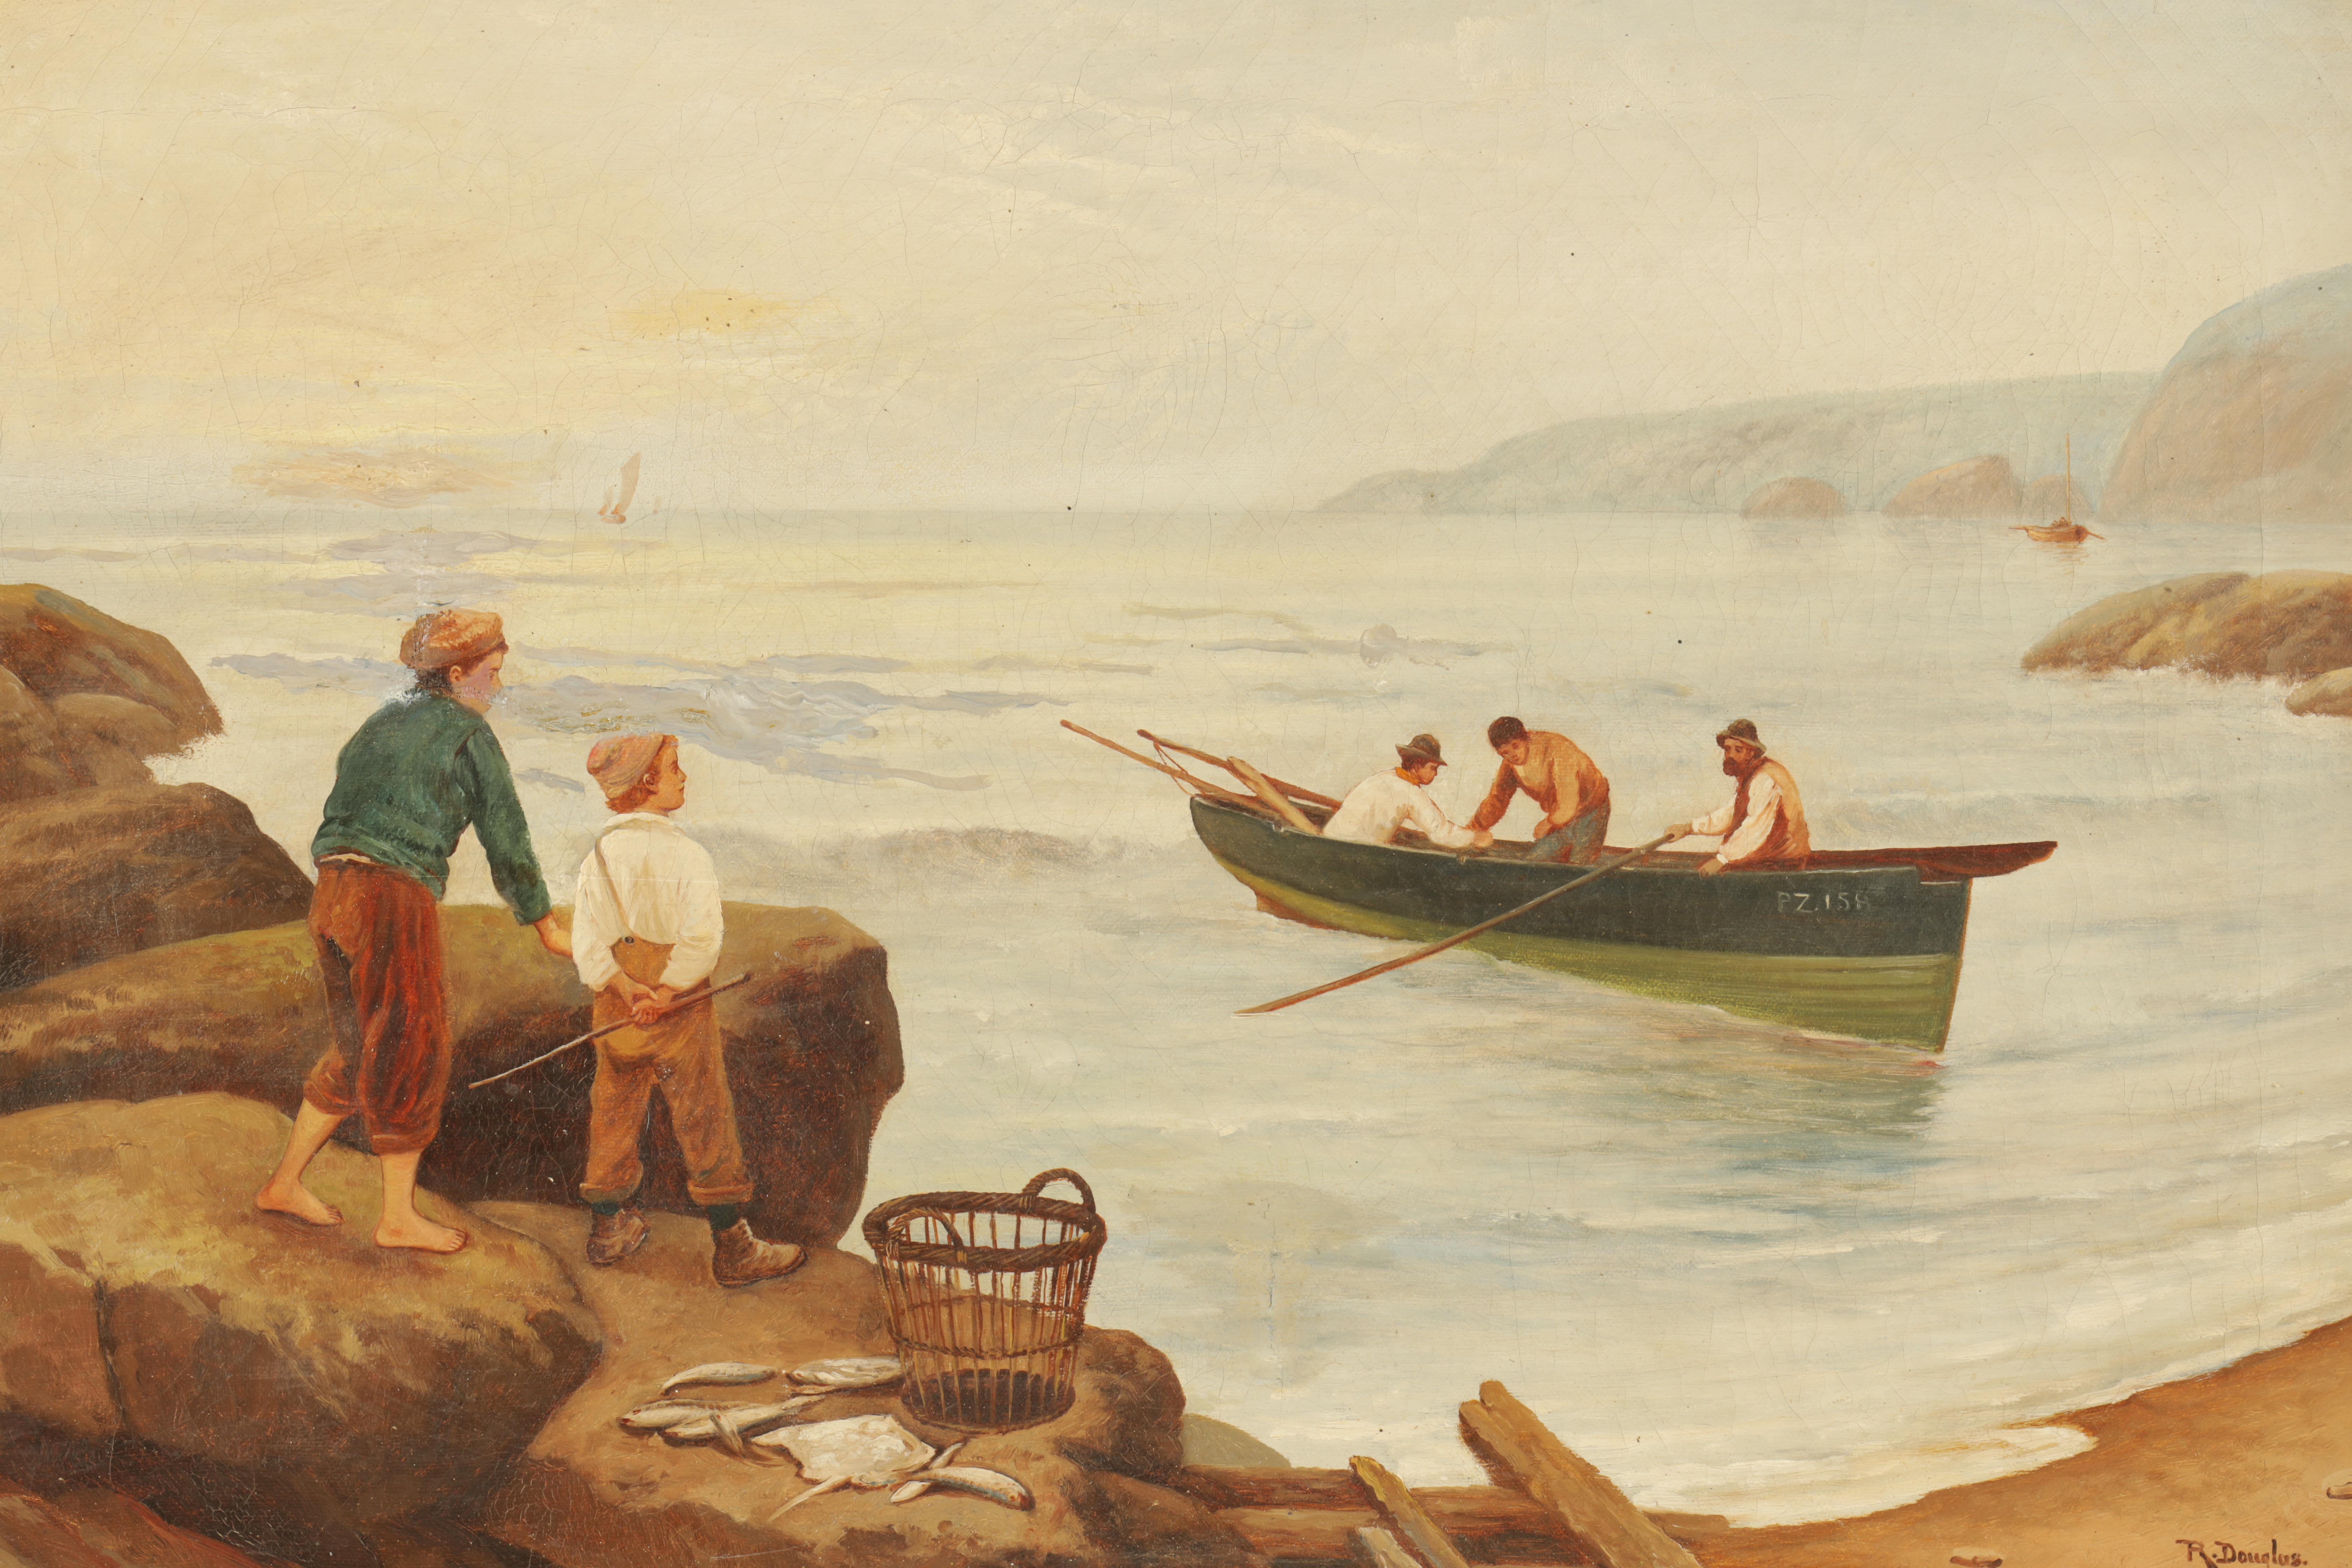 R DOUGLAS AN EARLY 20TH CENTURY OIL ON CANVAS Cornish beach with fisherman - signed 39cm high 60cm - Image 2 of 4